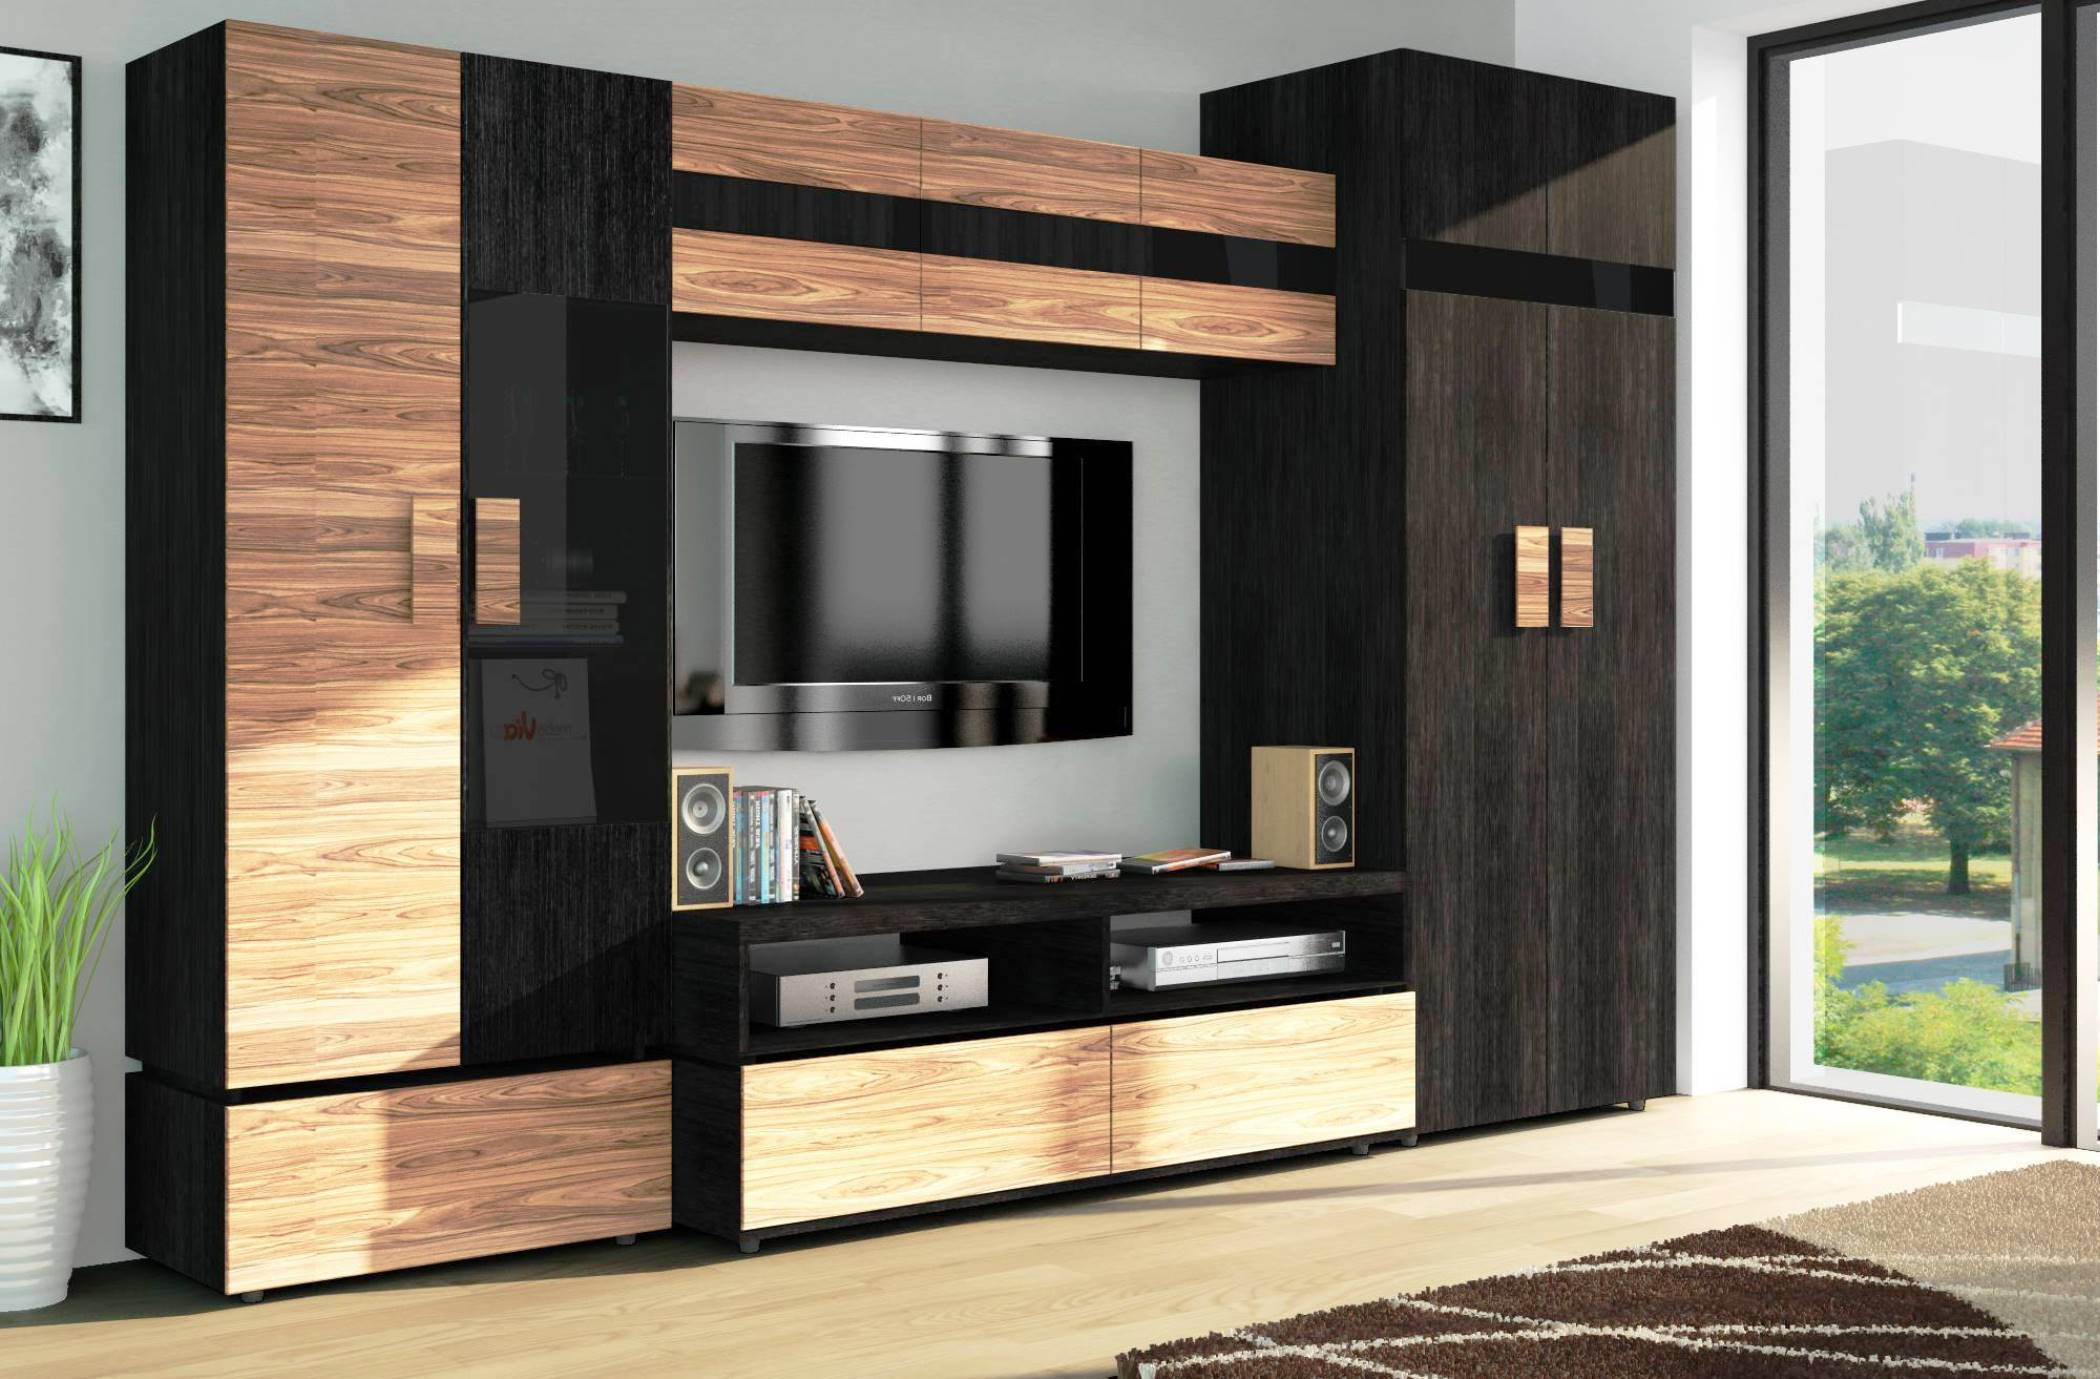 Living Room Cabinet Furniture to Add Practilcal Solutions to the Interior. The monolithic looking dark beige and black furniture set for TV